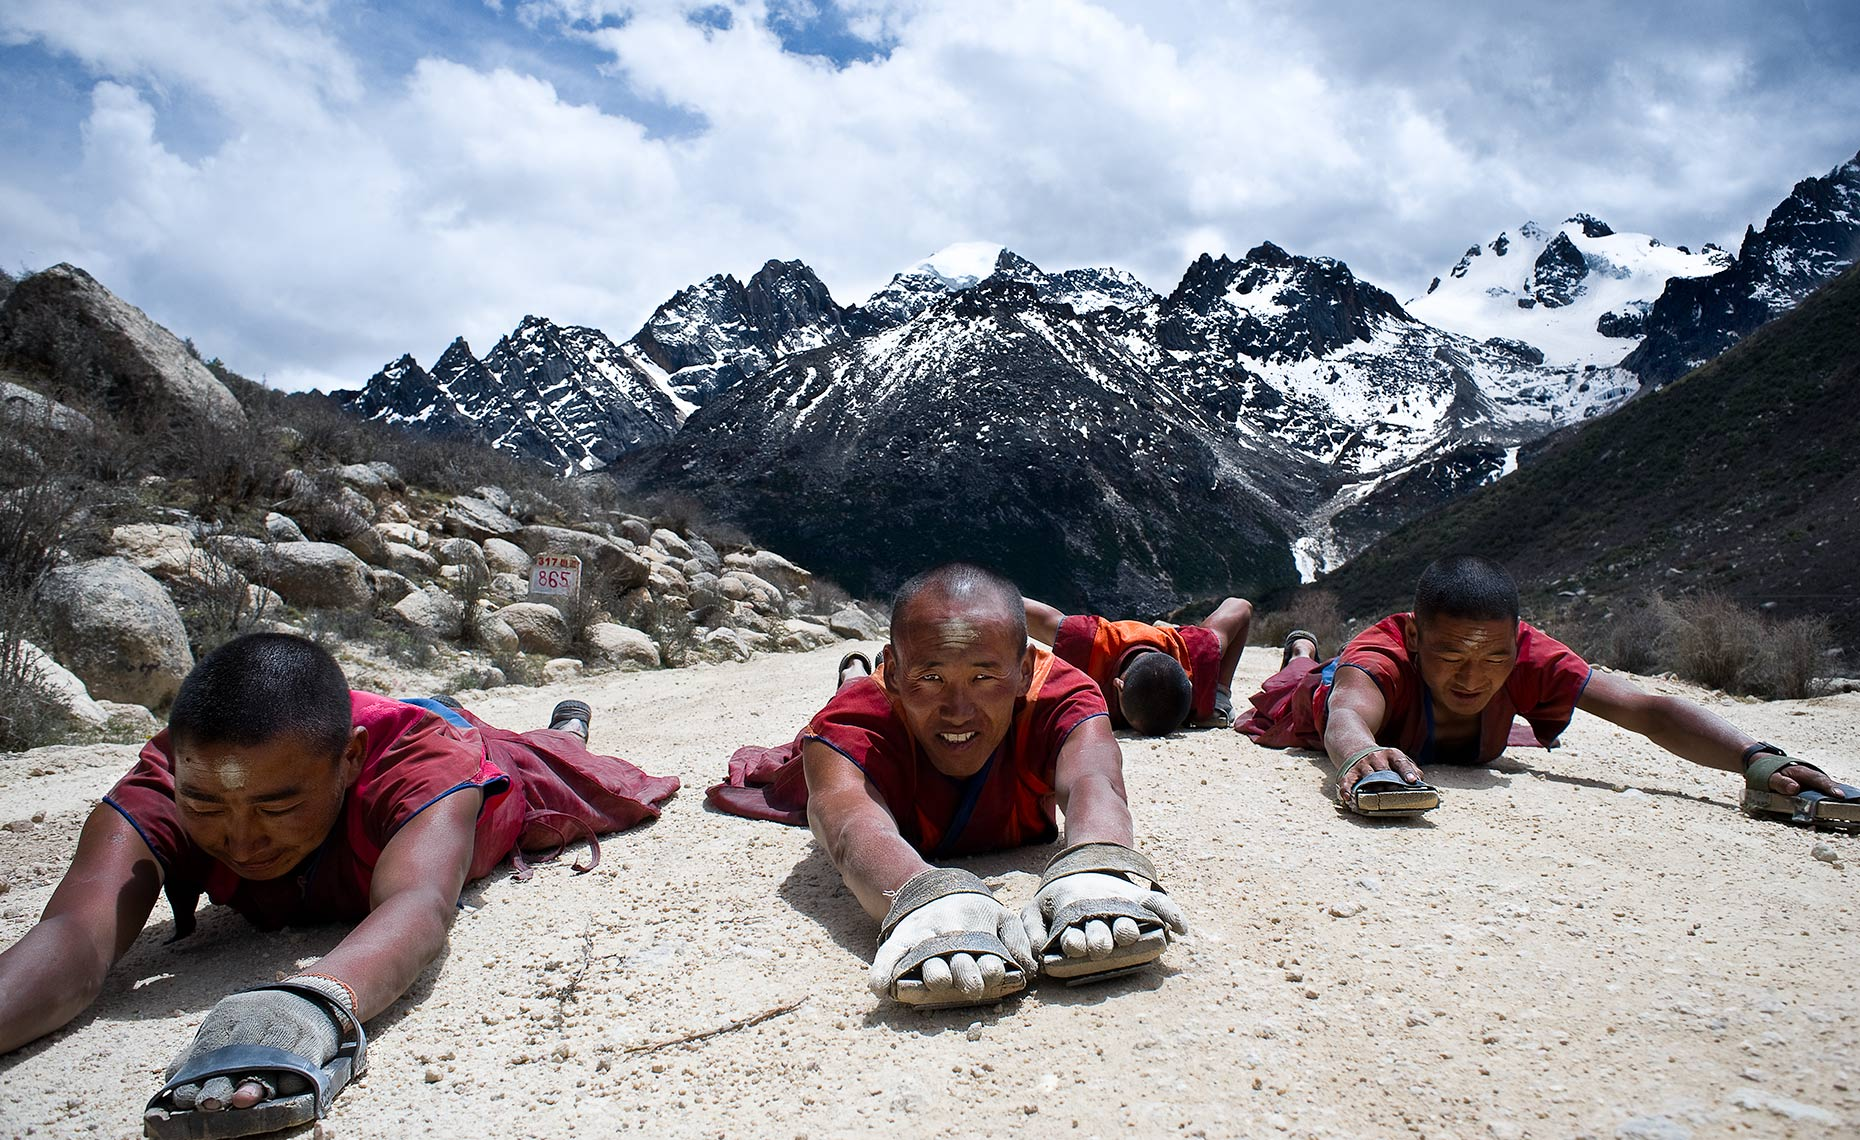 Tibetan Buddhist monks crawling on their way to Lhasa Tibet.. Photo © Konstantino Hatzisarros 2010